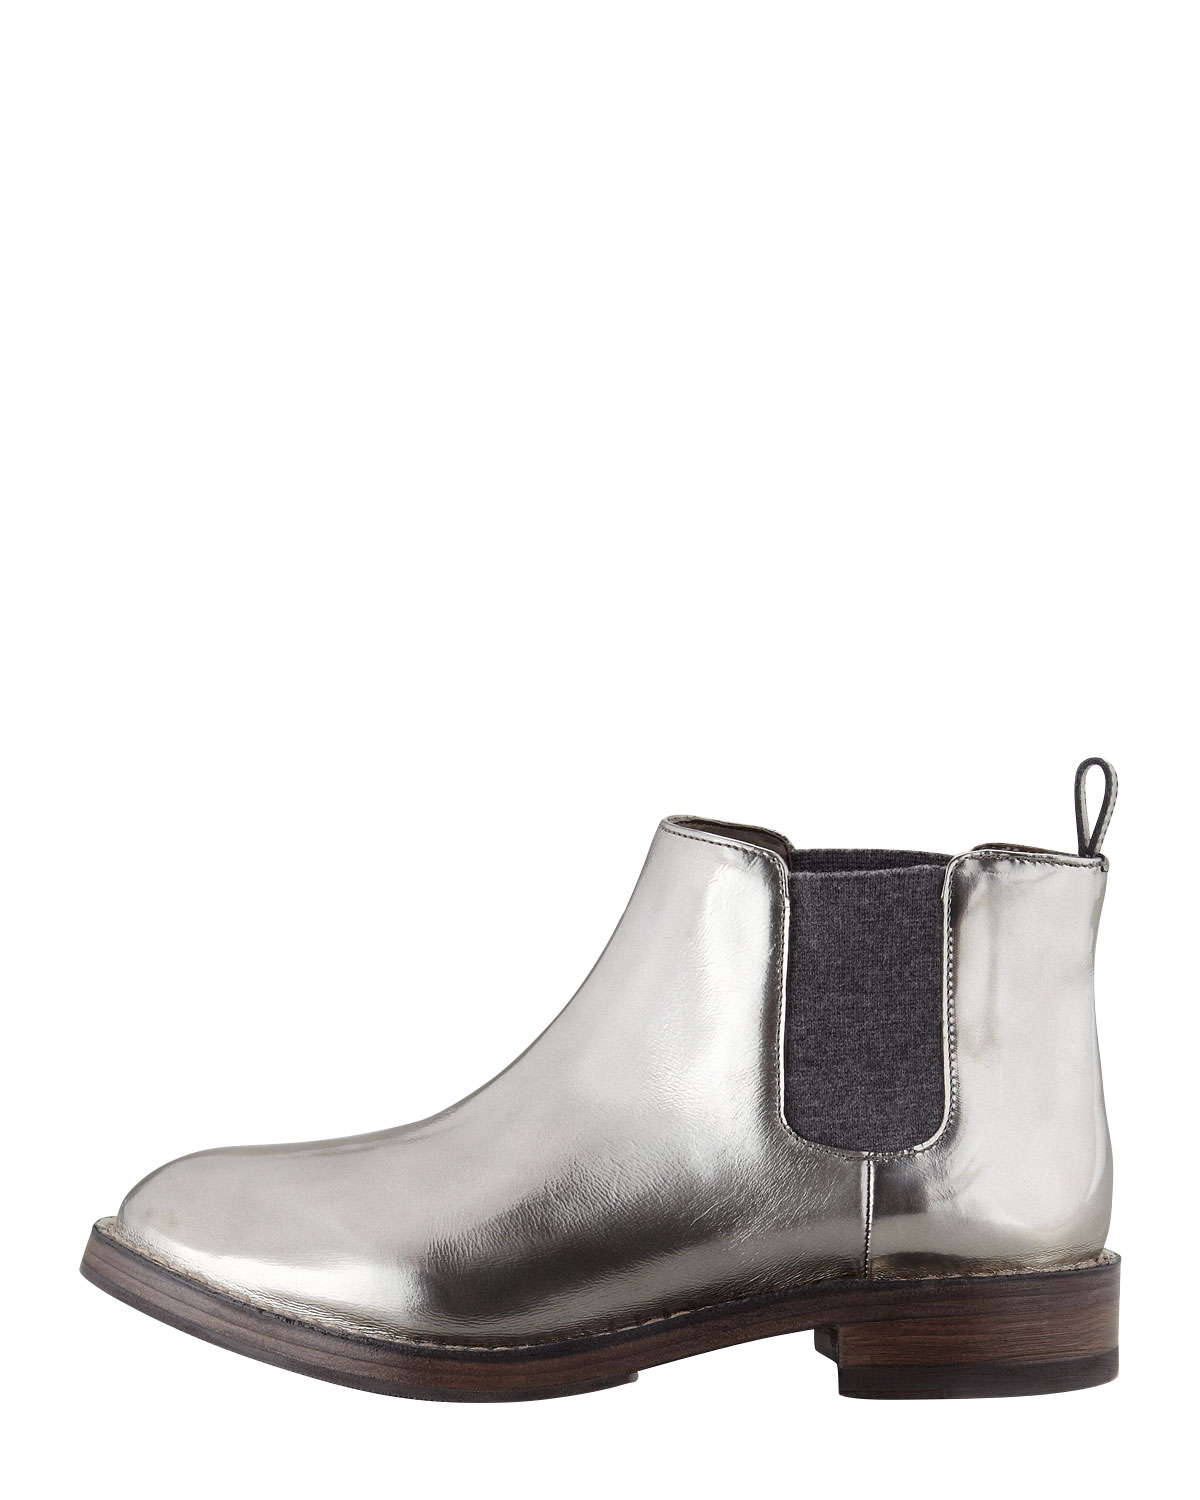 Recommend Discount Best Place To Buy Leather Chelsea boots Brunello Cucinelli DGYkHxcyg